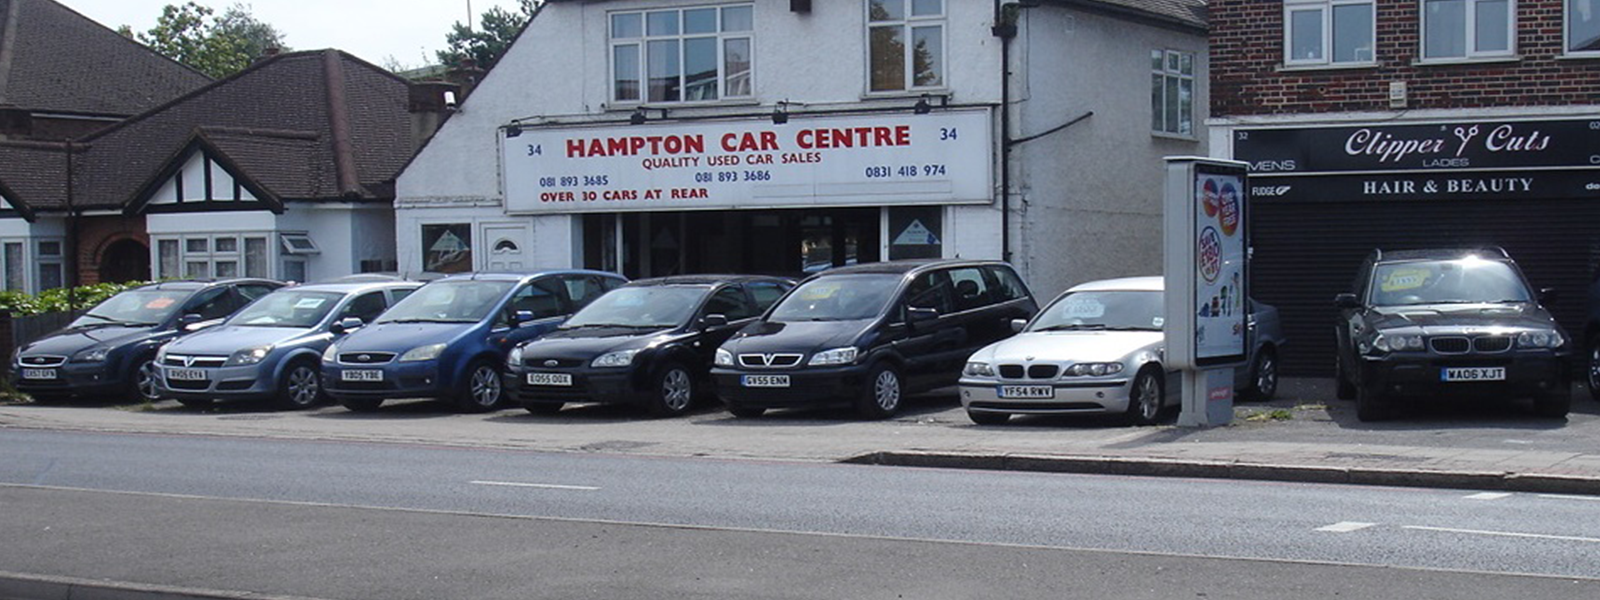 Hampton Car Centre